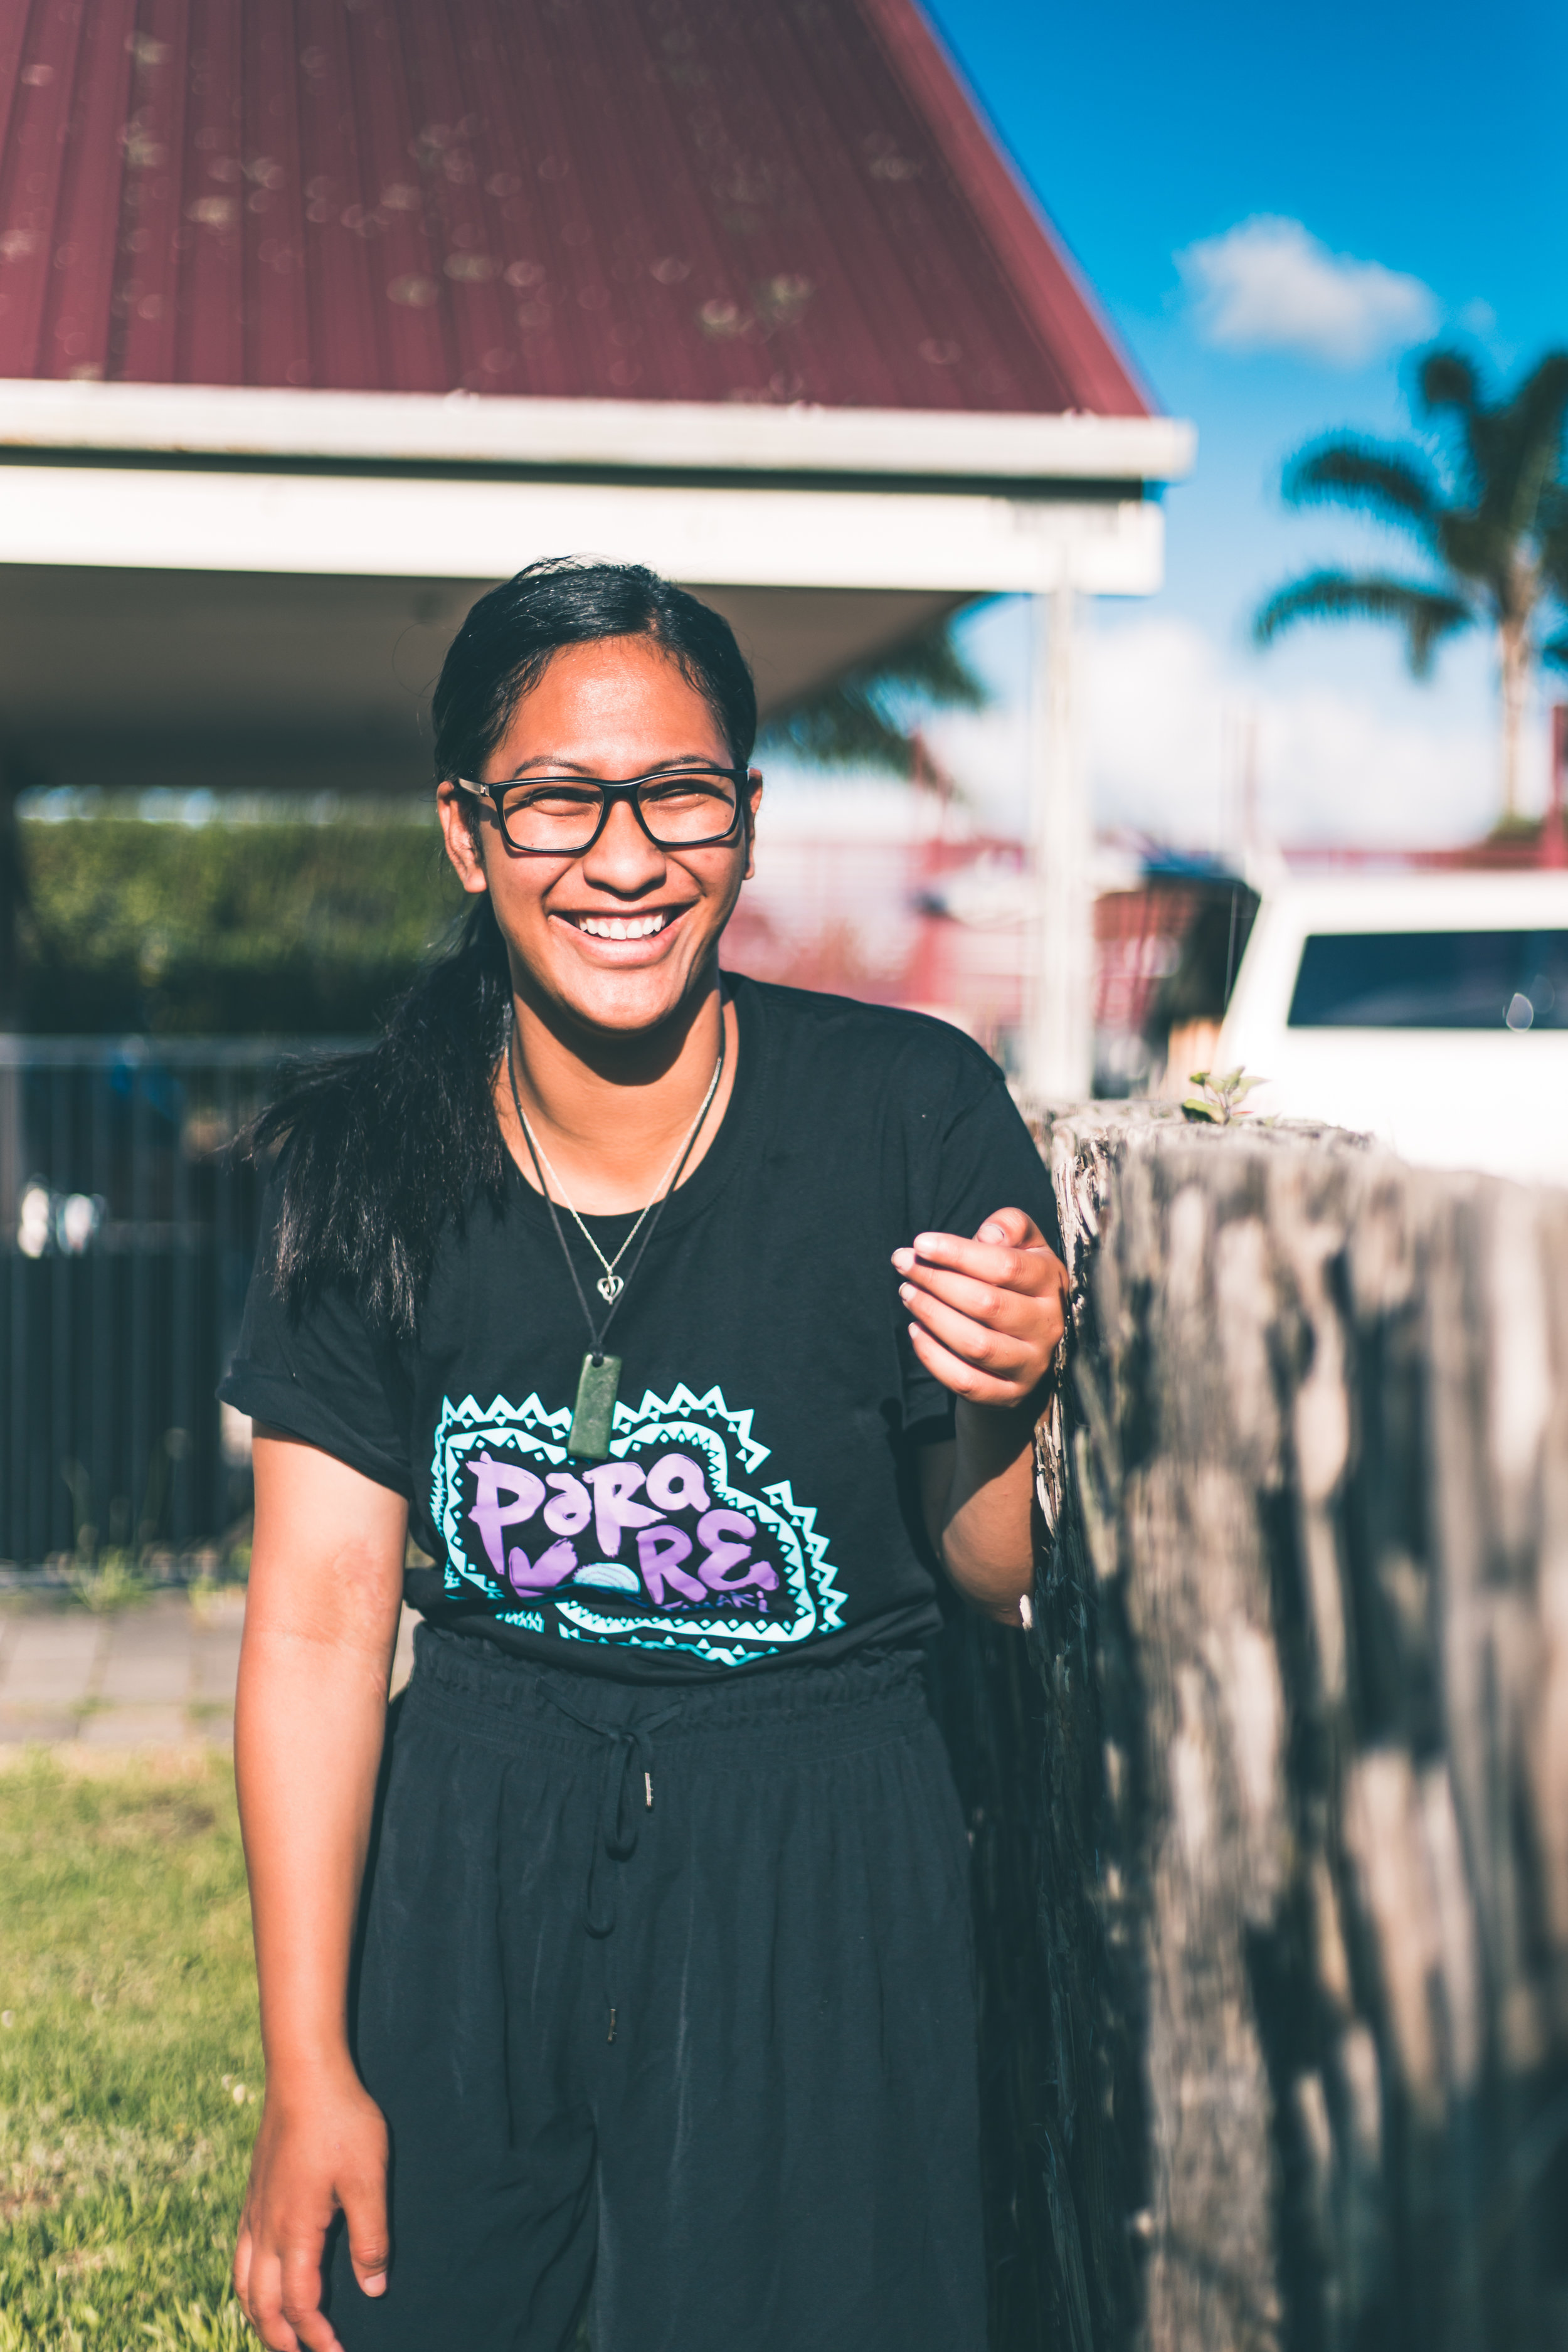 Awhina-Tawera Takuira-Mita - Kia Ora. Ko Awhina-Tawera toku ingoa, he uri tenei no Te Arawa.Next year I'll be a Year 13 student at Te Wharekura o Manurewa. At the end of April 2018 I came to OMG Tech, not knowing anything about the organisation or programme.Throughout the programme I have gained technology and computer skills, created a bond with people I usually wouldn't associate with and have created so many wonderful and lifelong memories. Now that the programme is coming to an end, I will leave with lifelong friends, an amazing experience, and a new family.